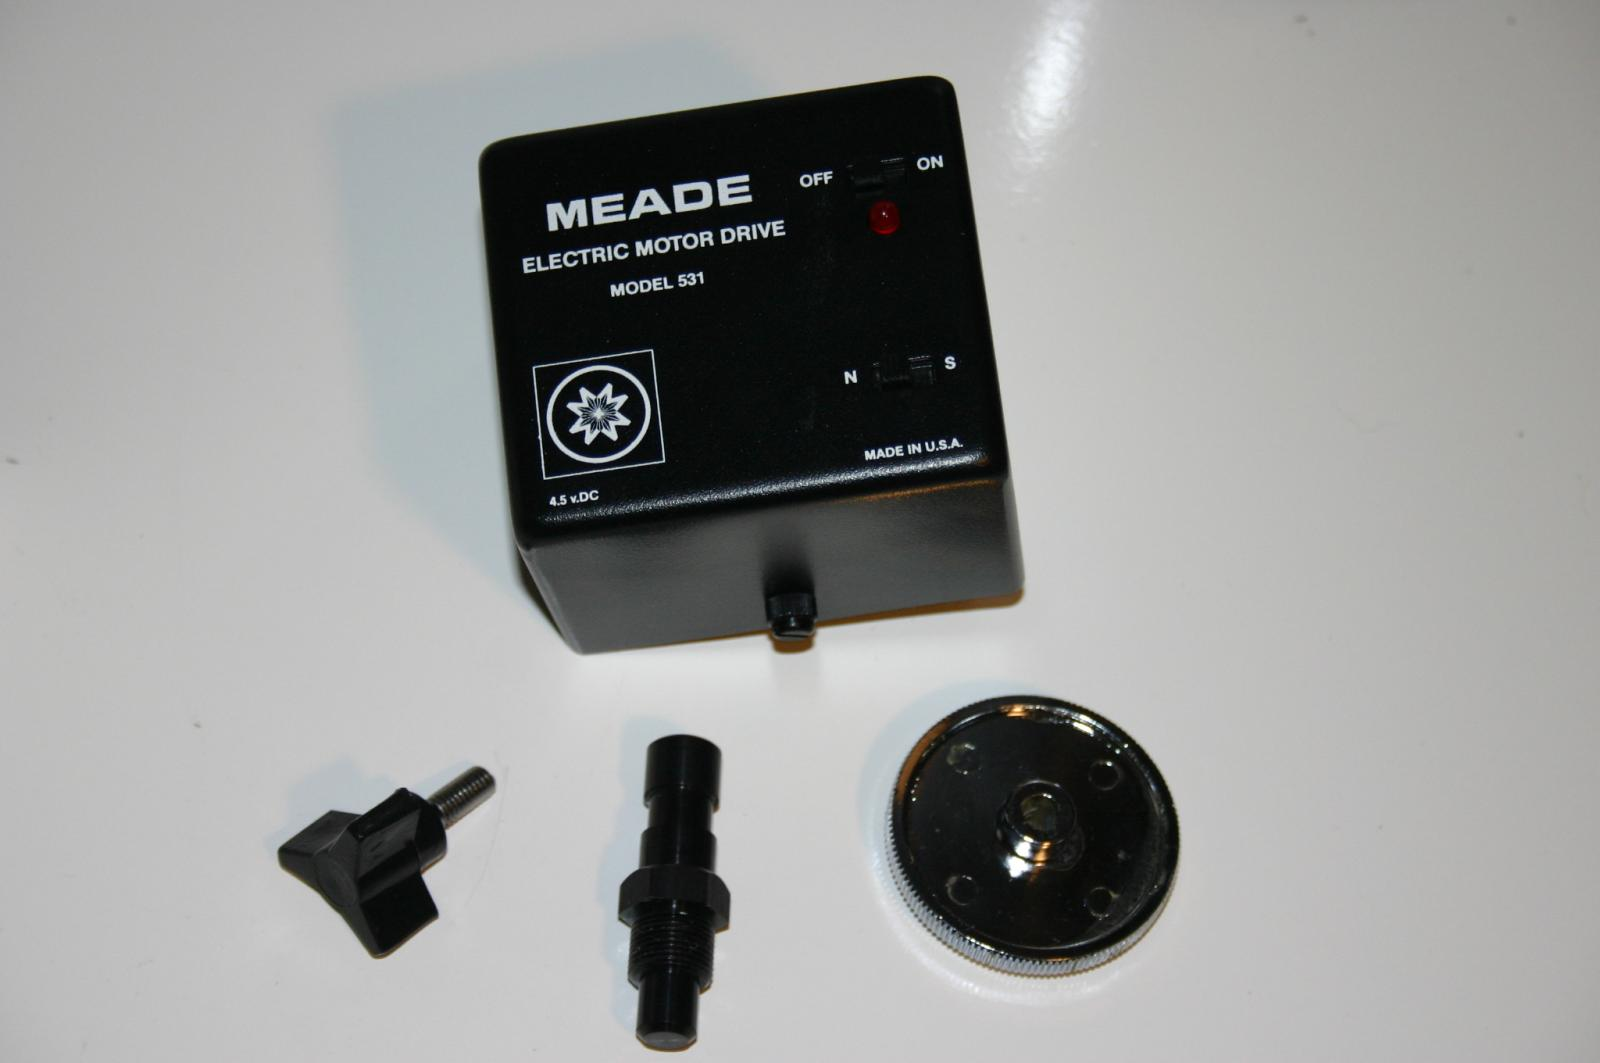 Meade Electric Motor Drive Kit Cn Classifieds Cloudy Nights